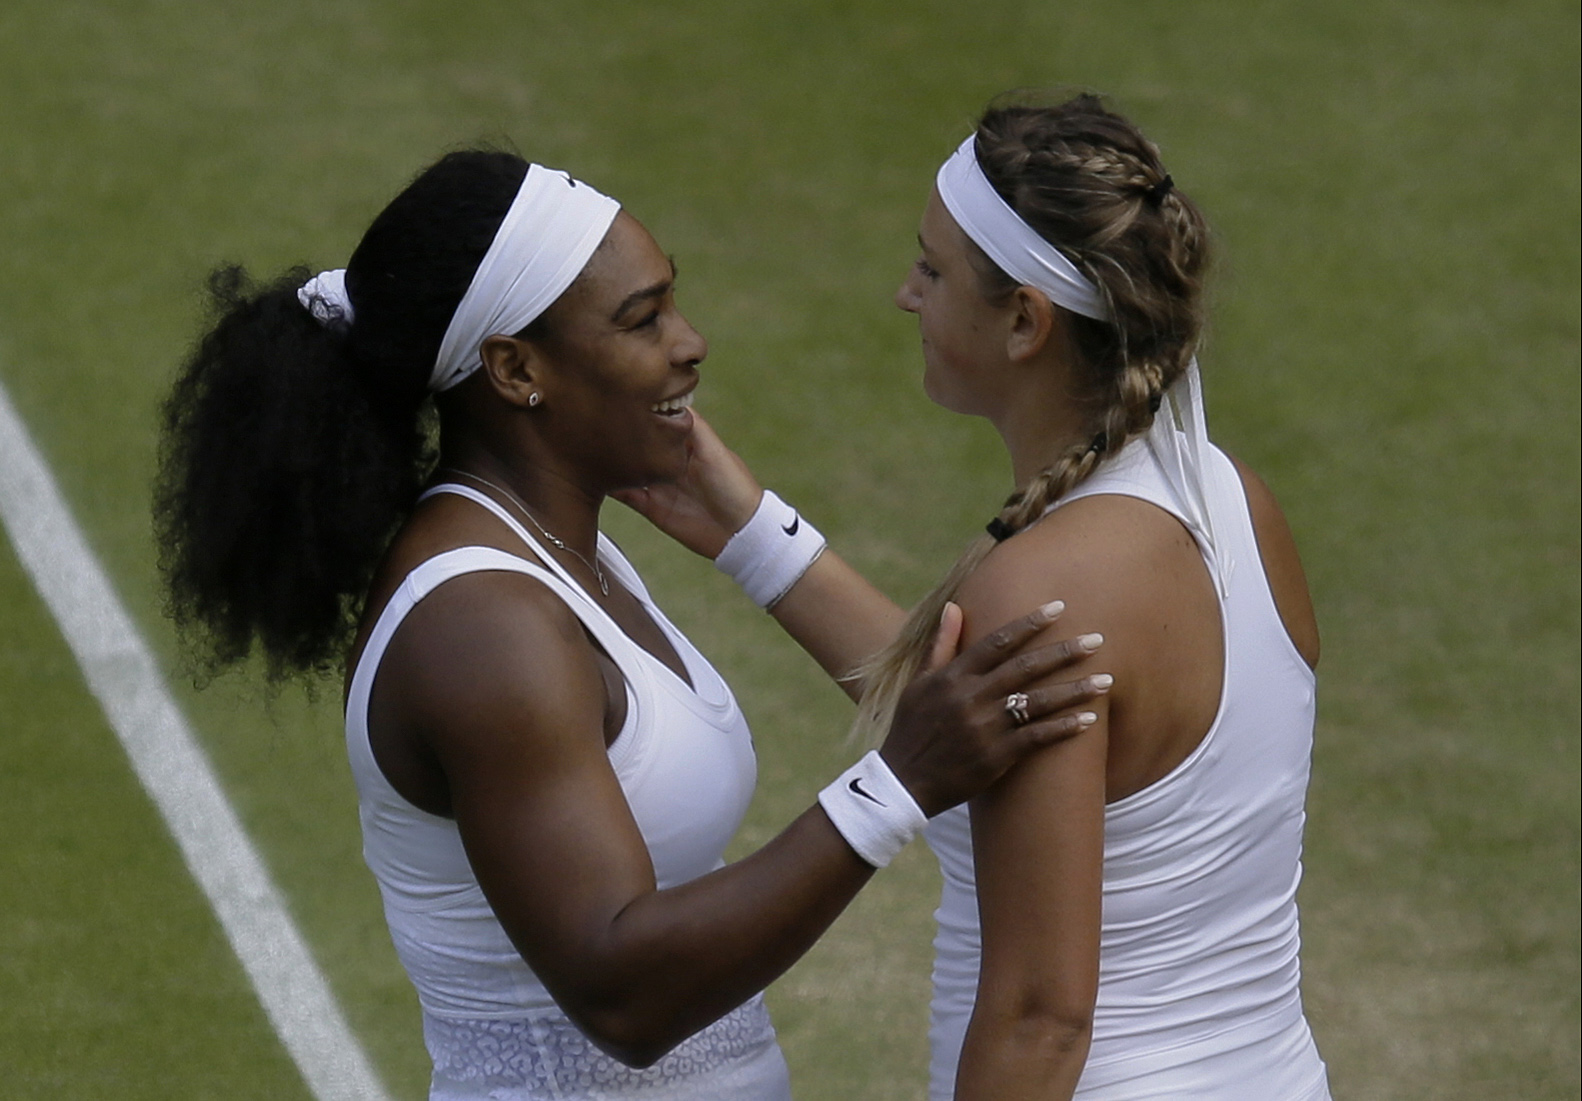 Serena Williams of the United States talks to Victoria Azarenka of Belarus, after defeating her in their singles match, at the All England Lawn Tennis Championships in Wimbledon, London, Tuesday July 7, 2015. Williams won 3-6, 6-2, 6-3.  (AP Photo/Pavel G